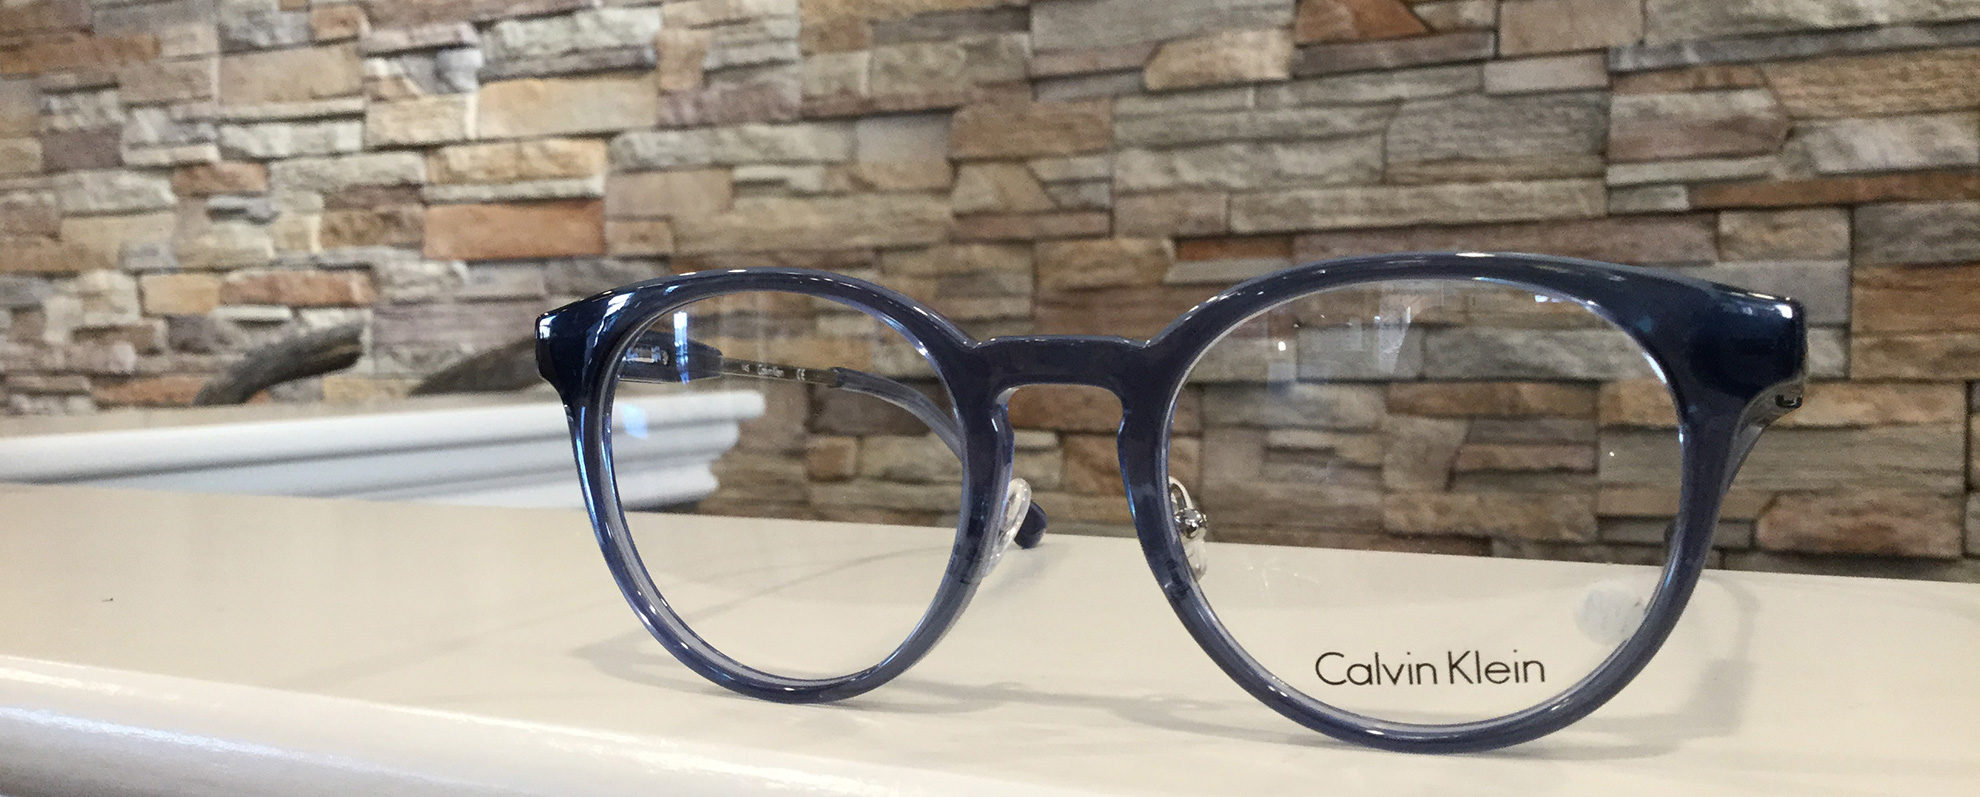 a pair of Calvin Klein glasses frames